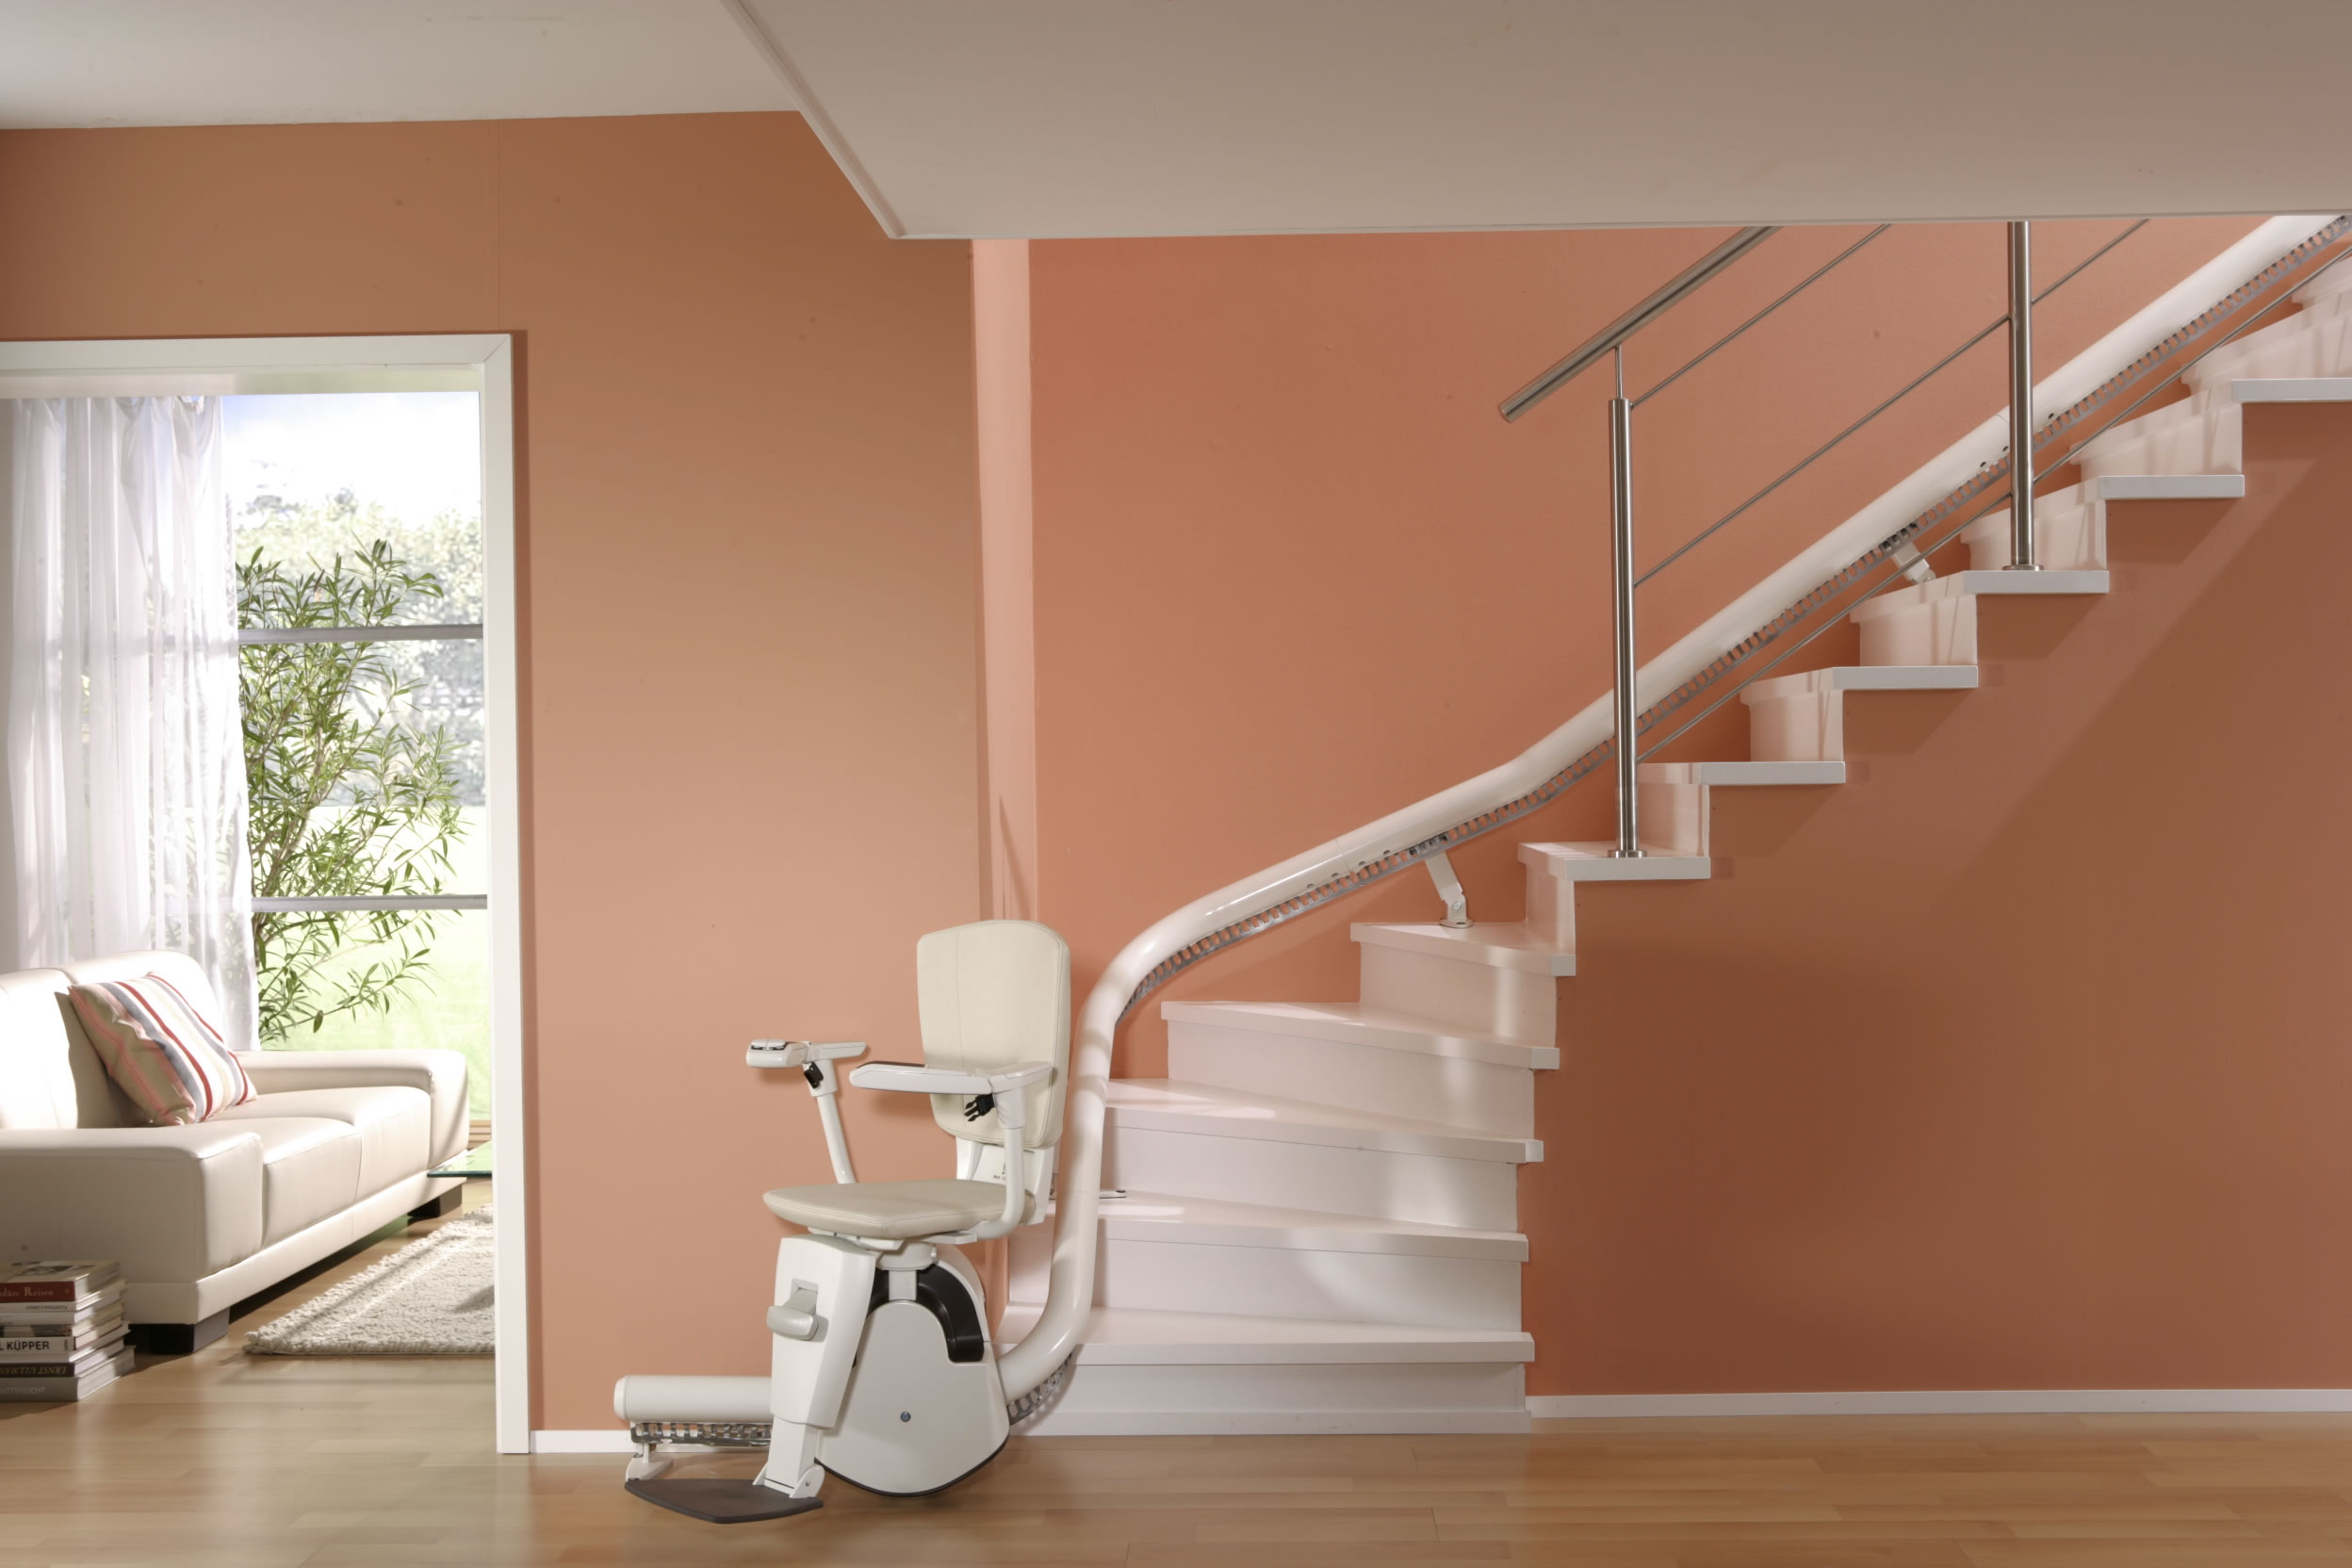 Stair Chair Lift Prices Stair Chair Lift Cost Daksh Stair Chair Lift Prices Medicare